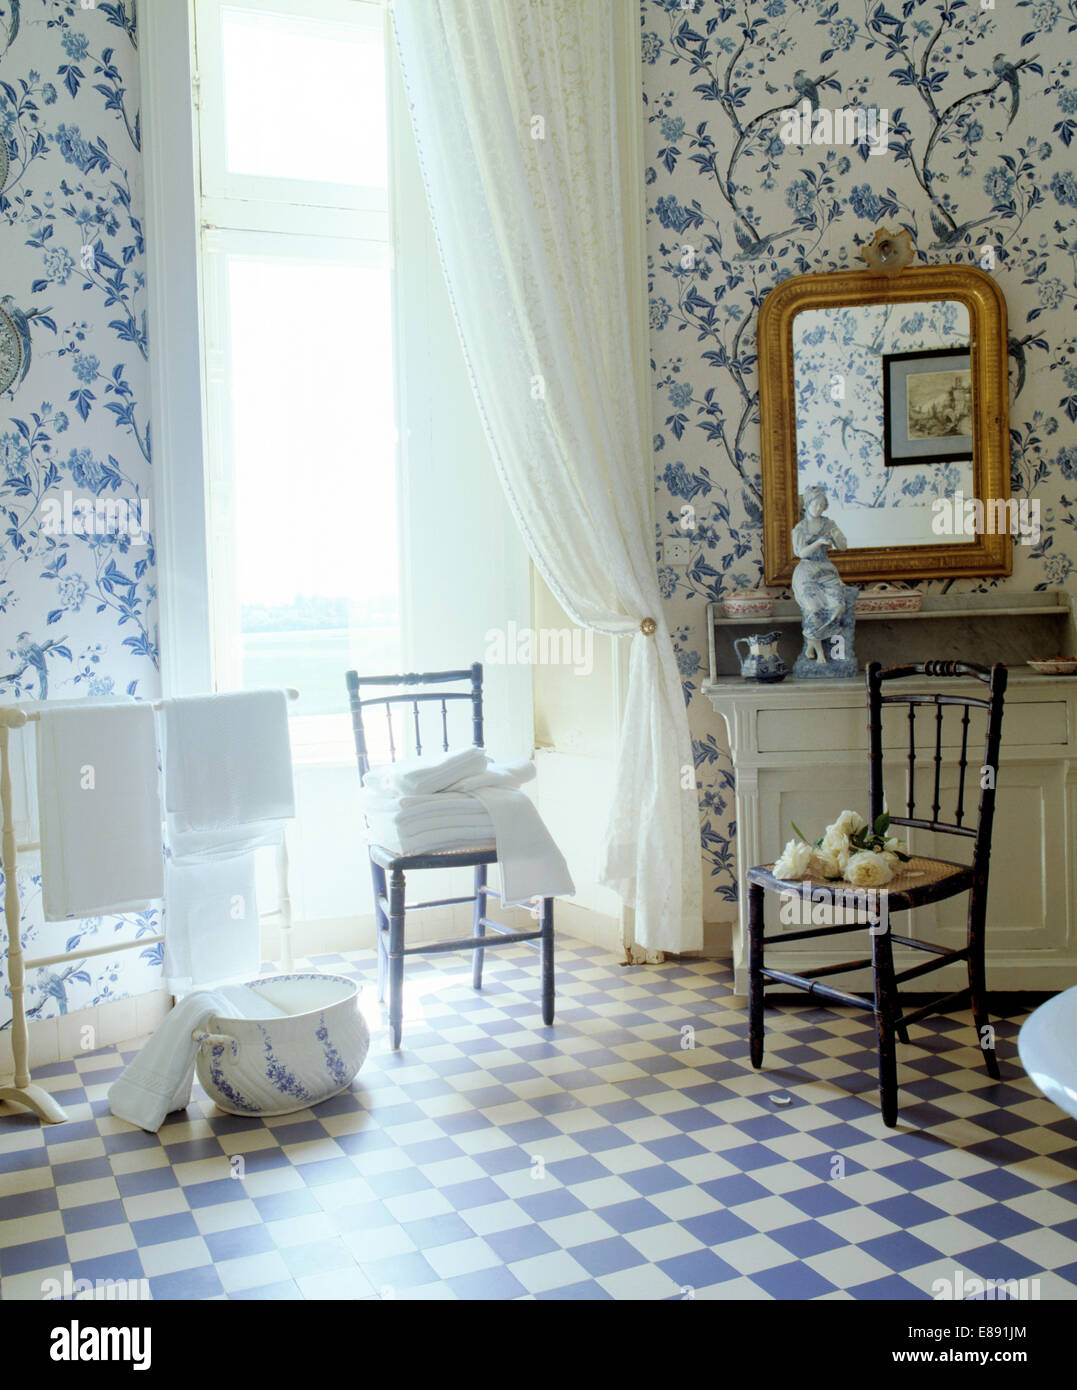 Blue+white Chequer Board Vinyl Floor In Country Bathroom With Blue+white  Floral Wallpaper And White Voile Curtains